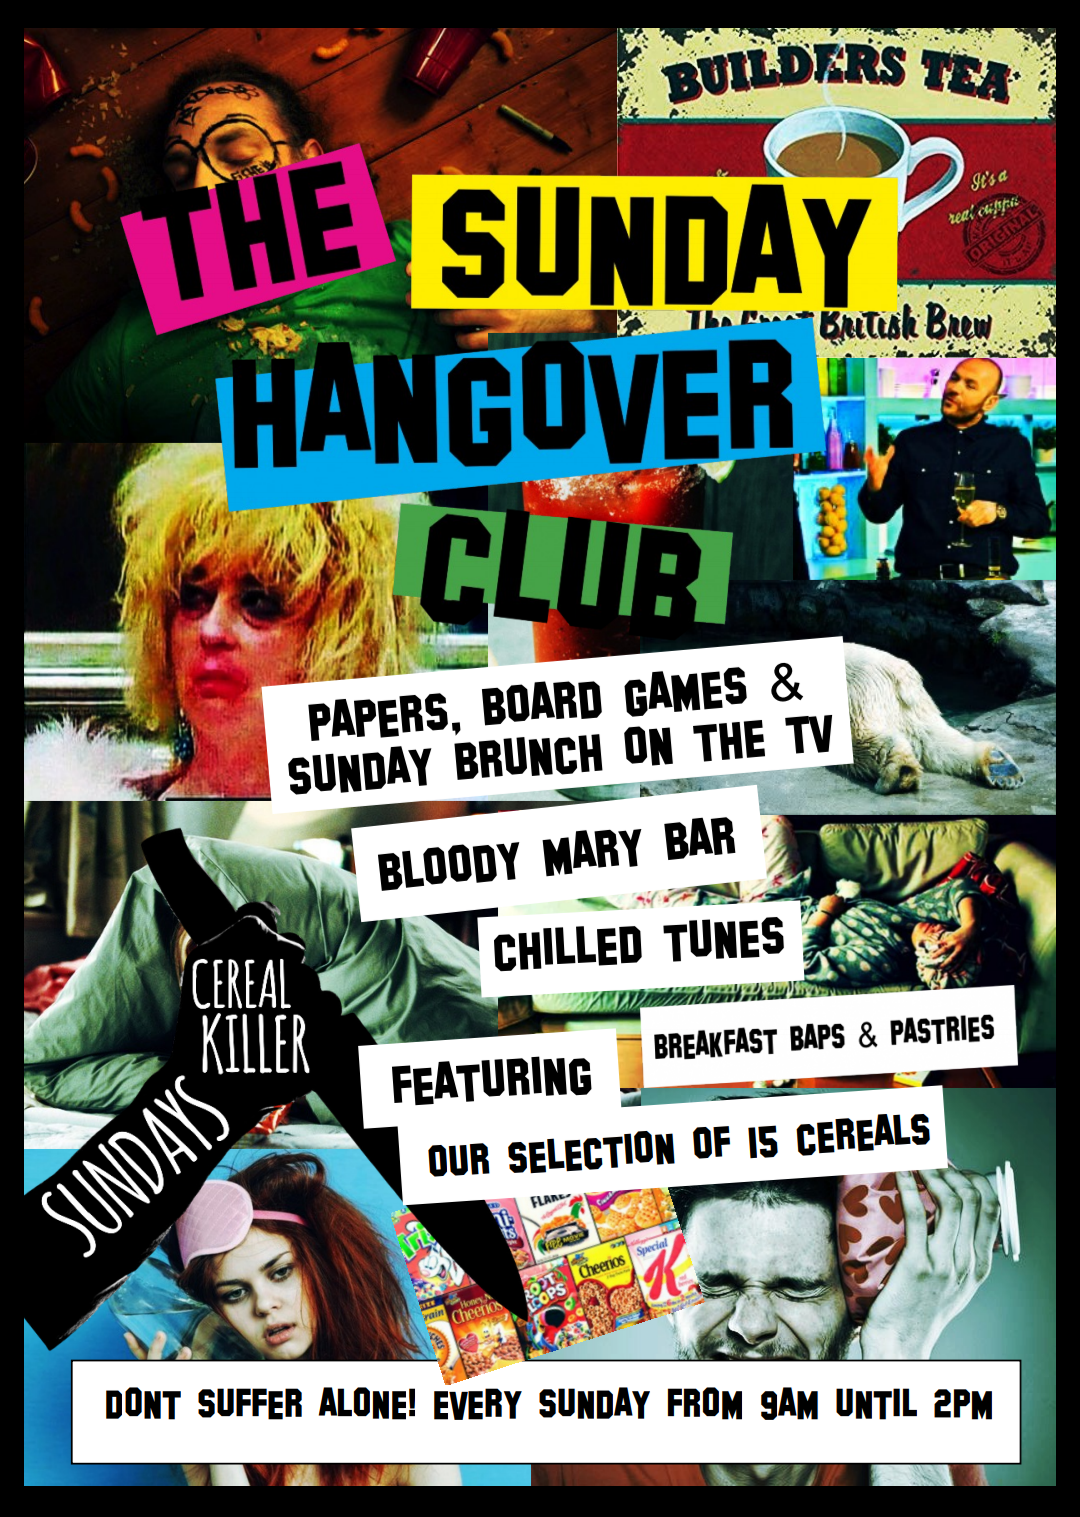 SUNDAY HANGOVER CLUB